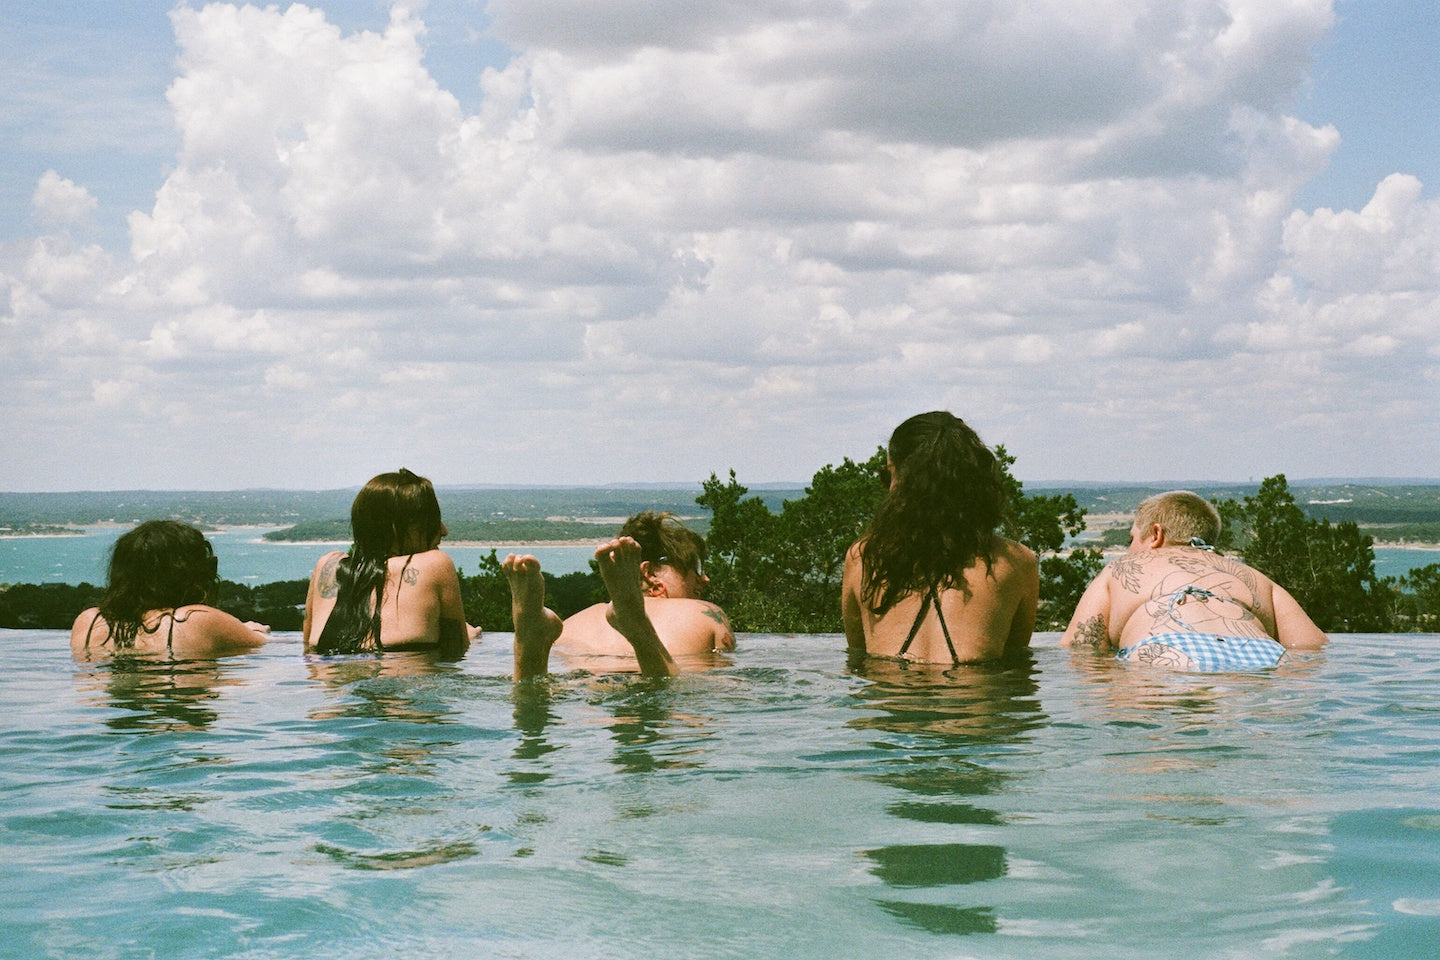 Five people in swimsuits in a pool looking out to the horizon. You can see trees, water, and sand in the distance